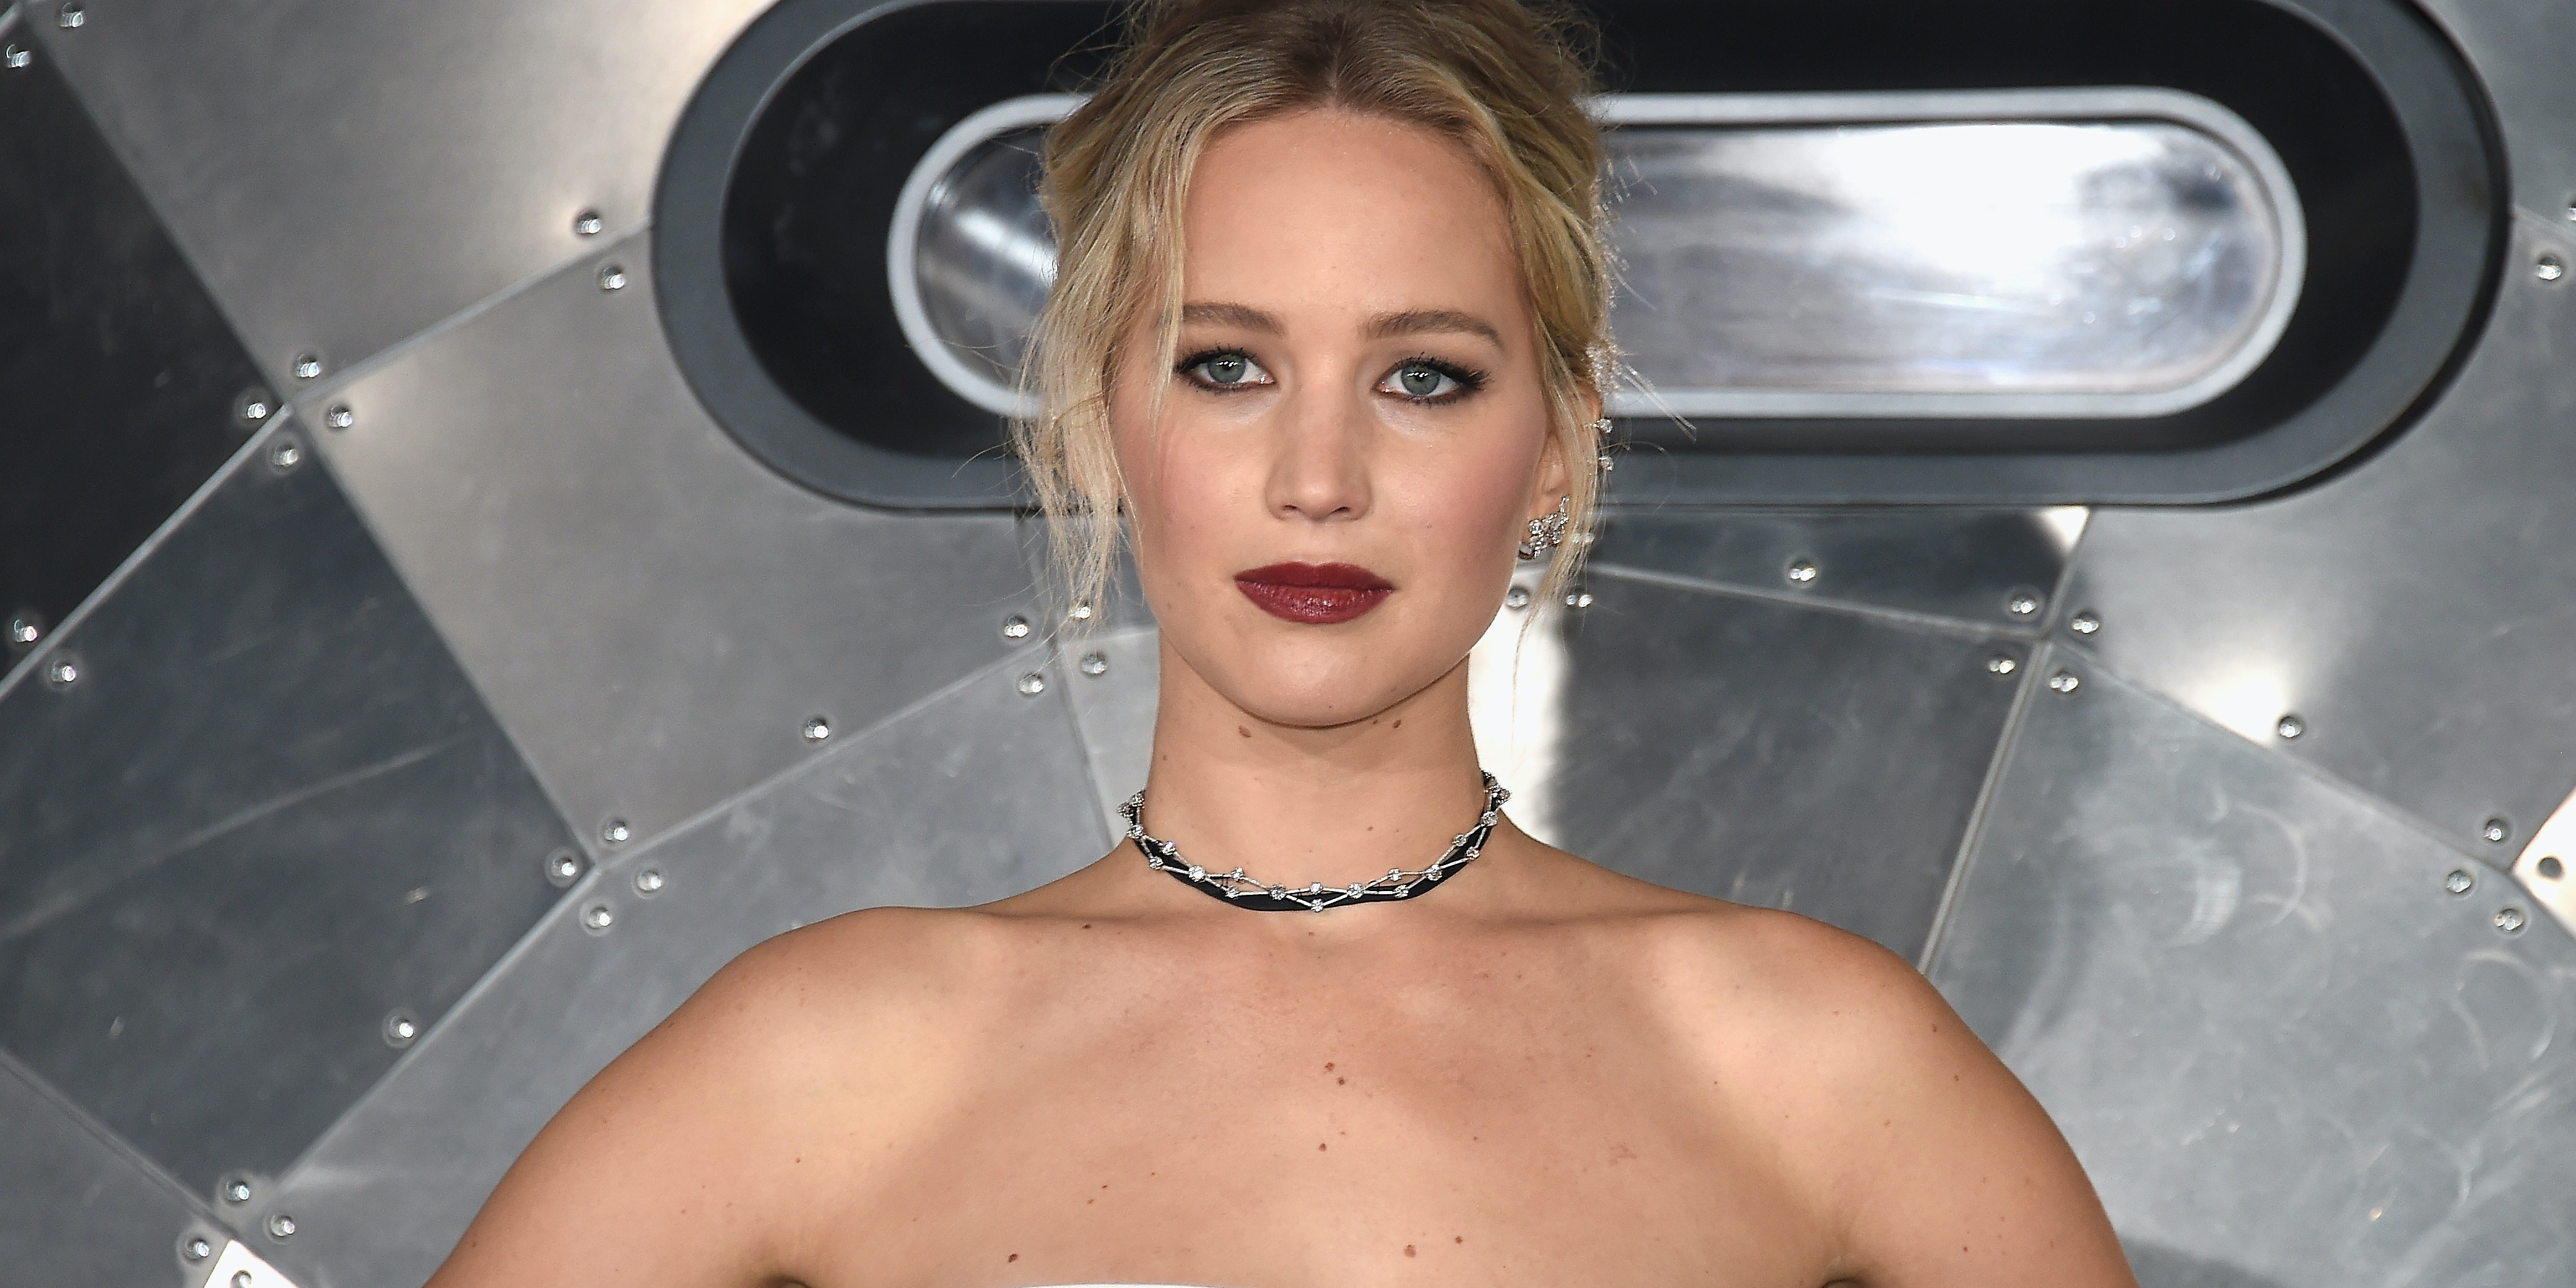 Jennifer Lawrence Describes The Aftermath Of Her Data Being Leaked